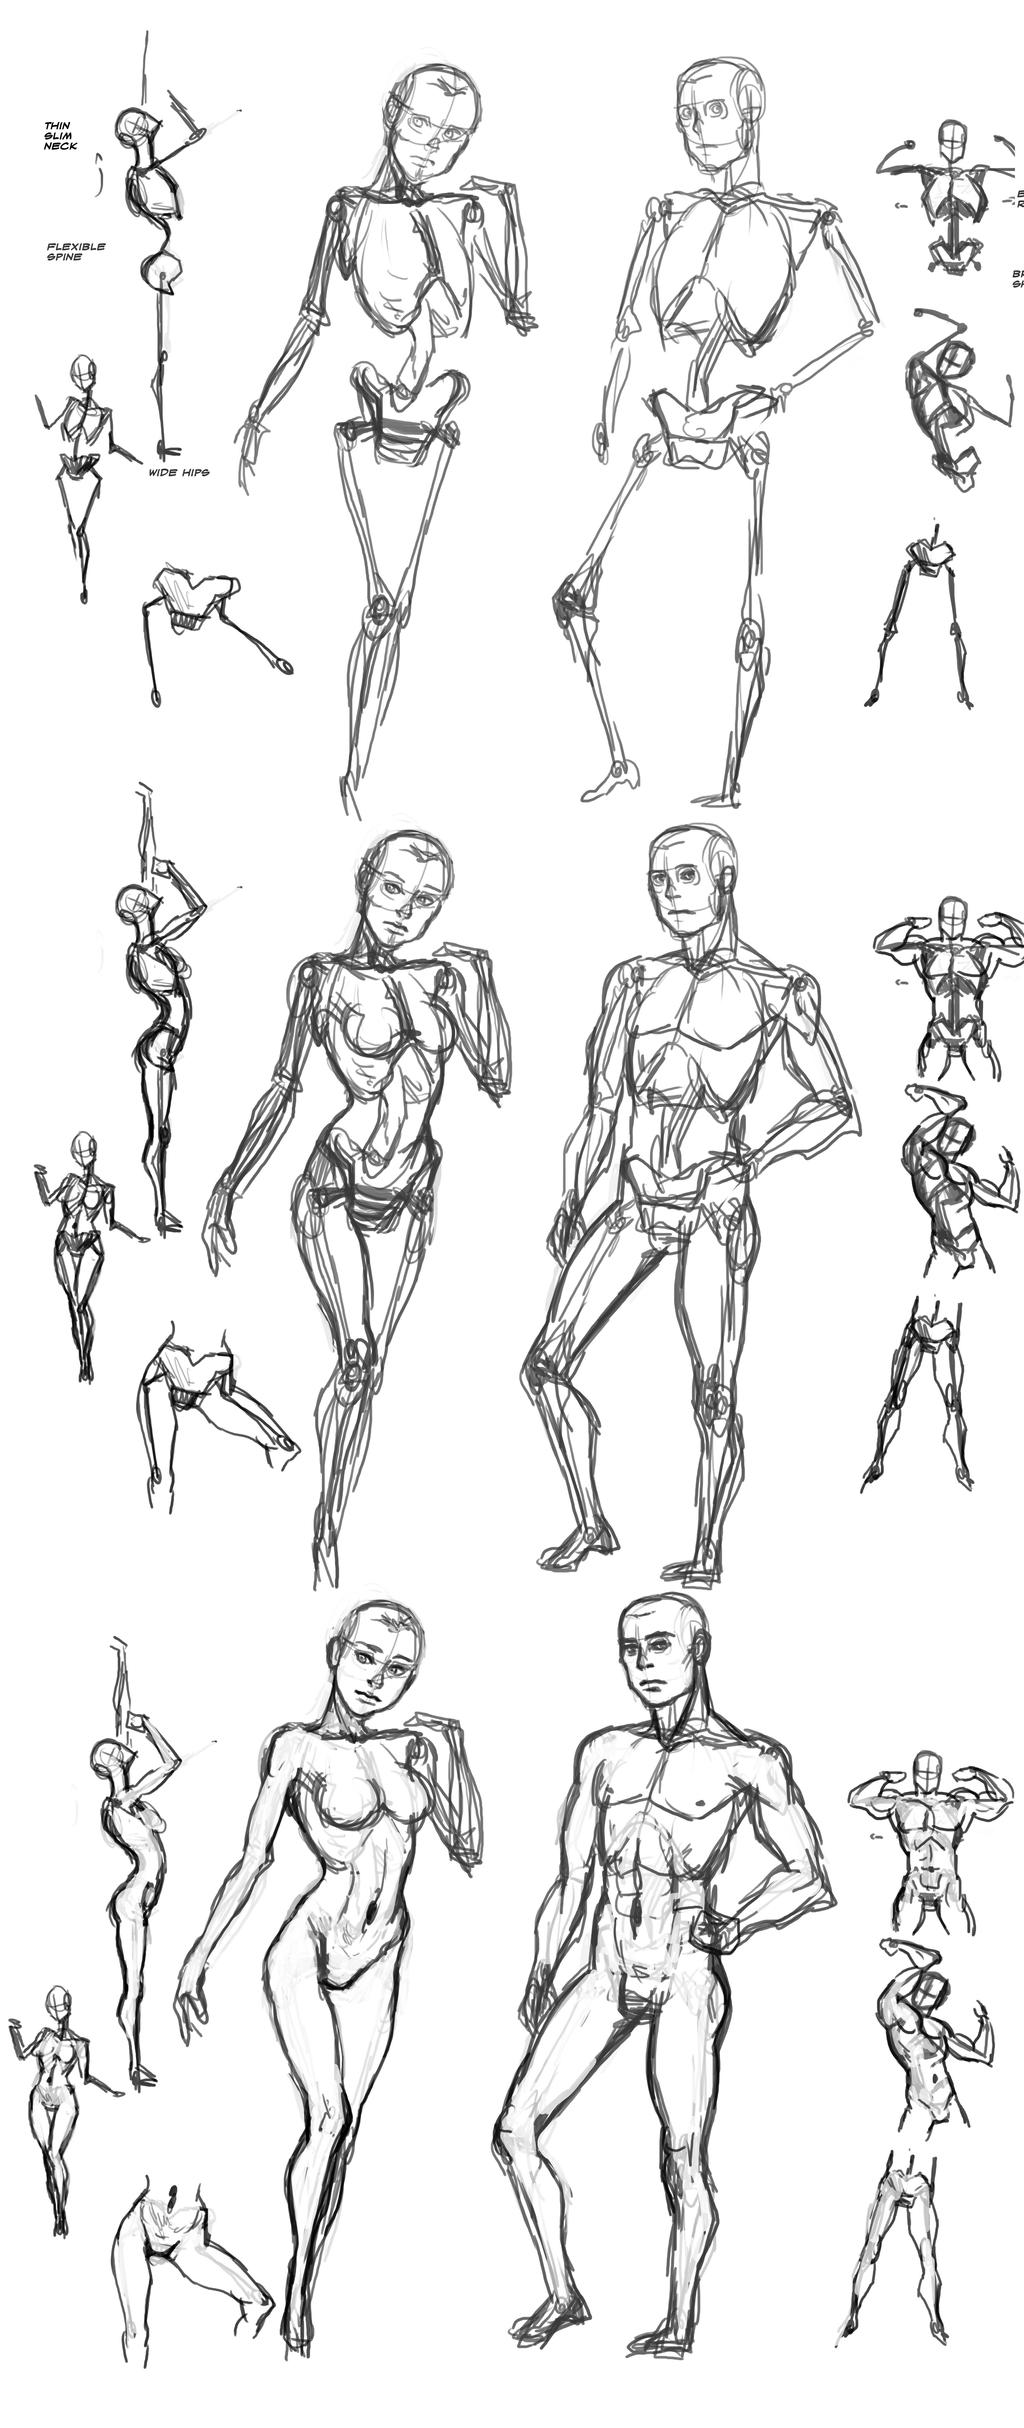 Female and Male Anatomy Comparison by Frost7 on DeviantArt